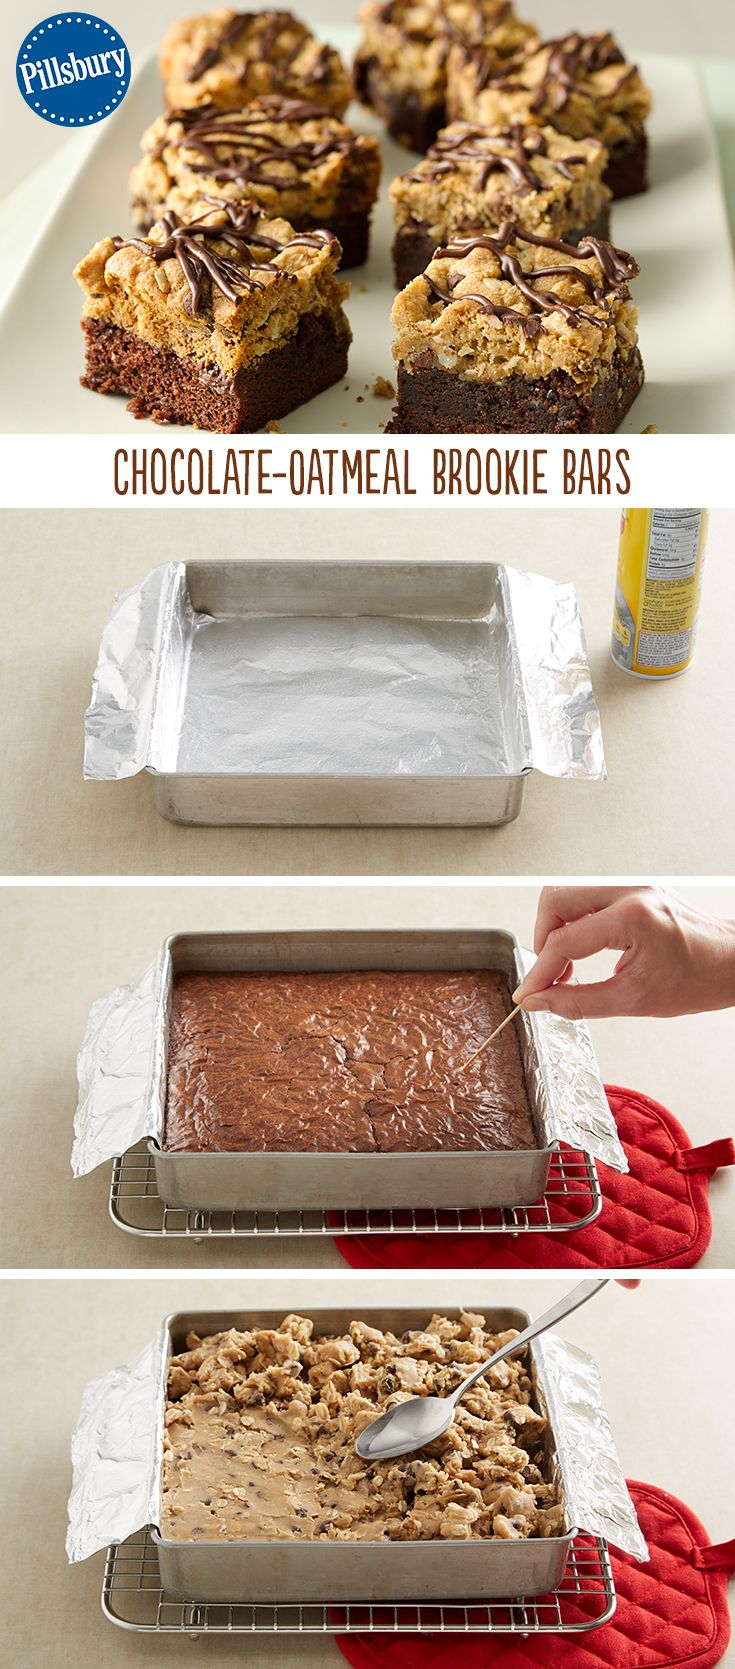 A combination of your two favorite treats: chocolate chip cookies and brownies. These simple cookie-brownie bars have the height to impress! Easy to make and made extra-special with the addition of oats. Serve these at half-time during game day or for any get-together with friends.